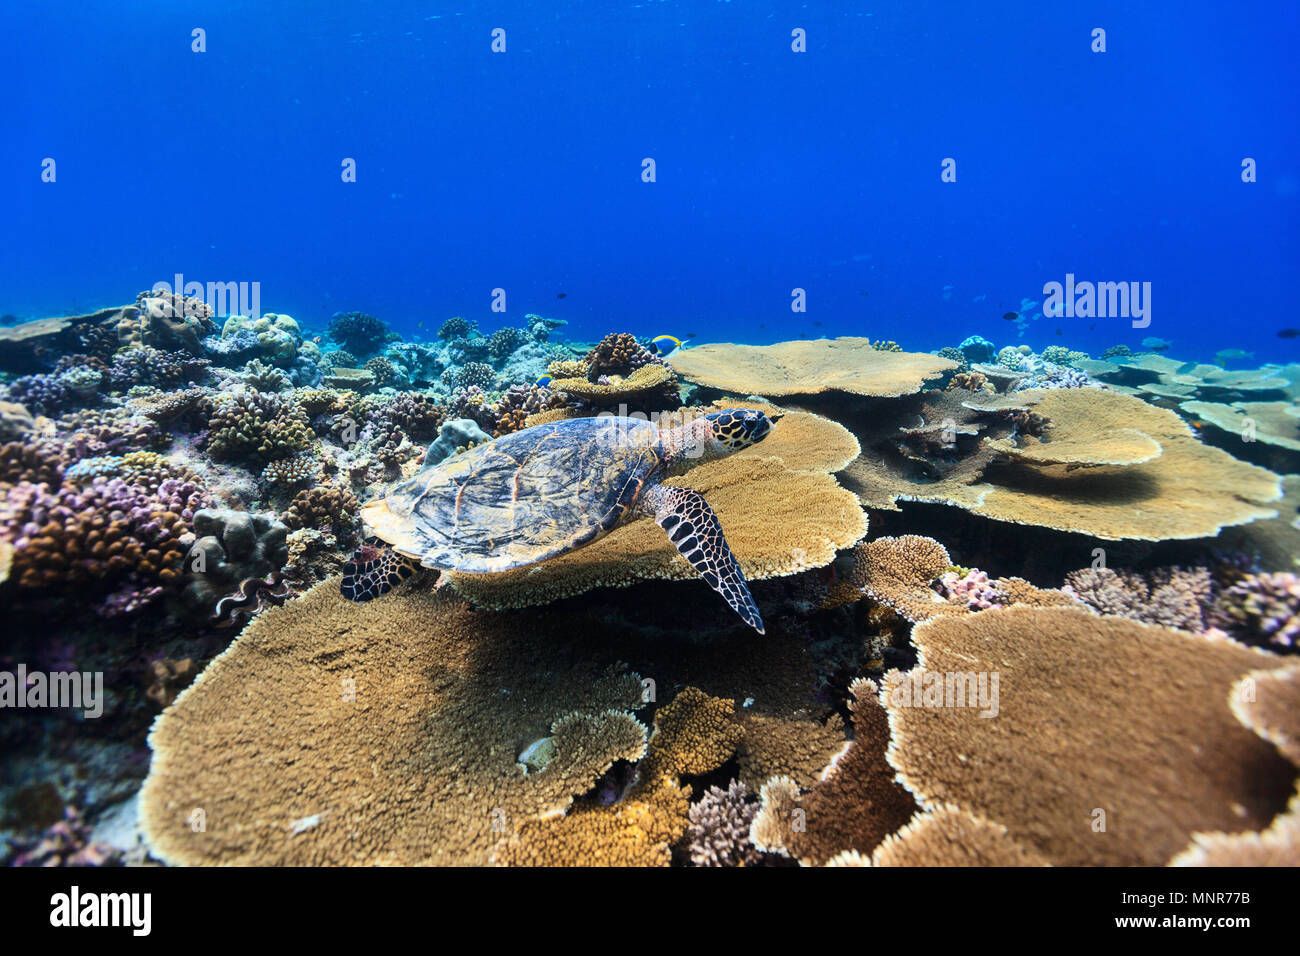 Hawksbill turtle swimming underwater among the coral reef - Stock Image